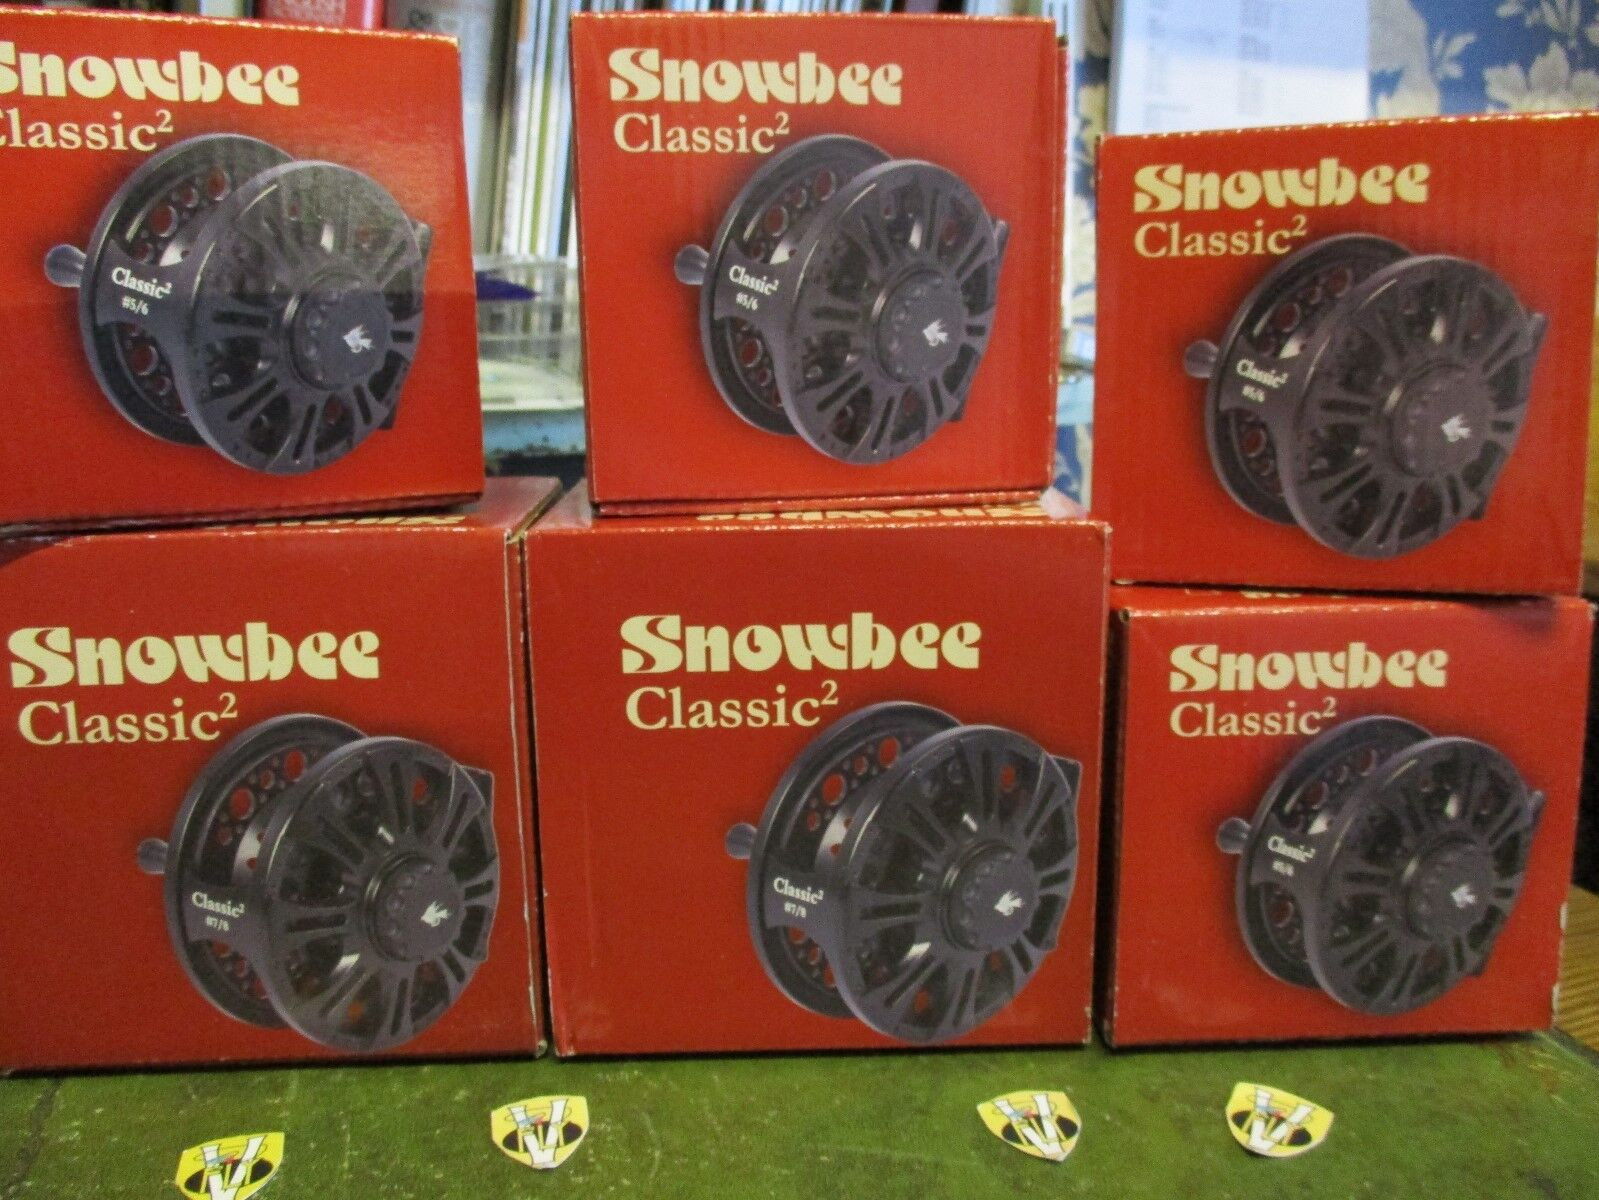 Snowbee Classic 2  Trout & Salmon Fly Reels & Spare Spools All Model Listing  outlet store